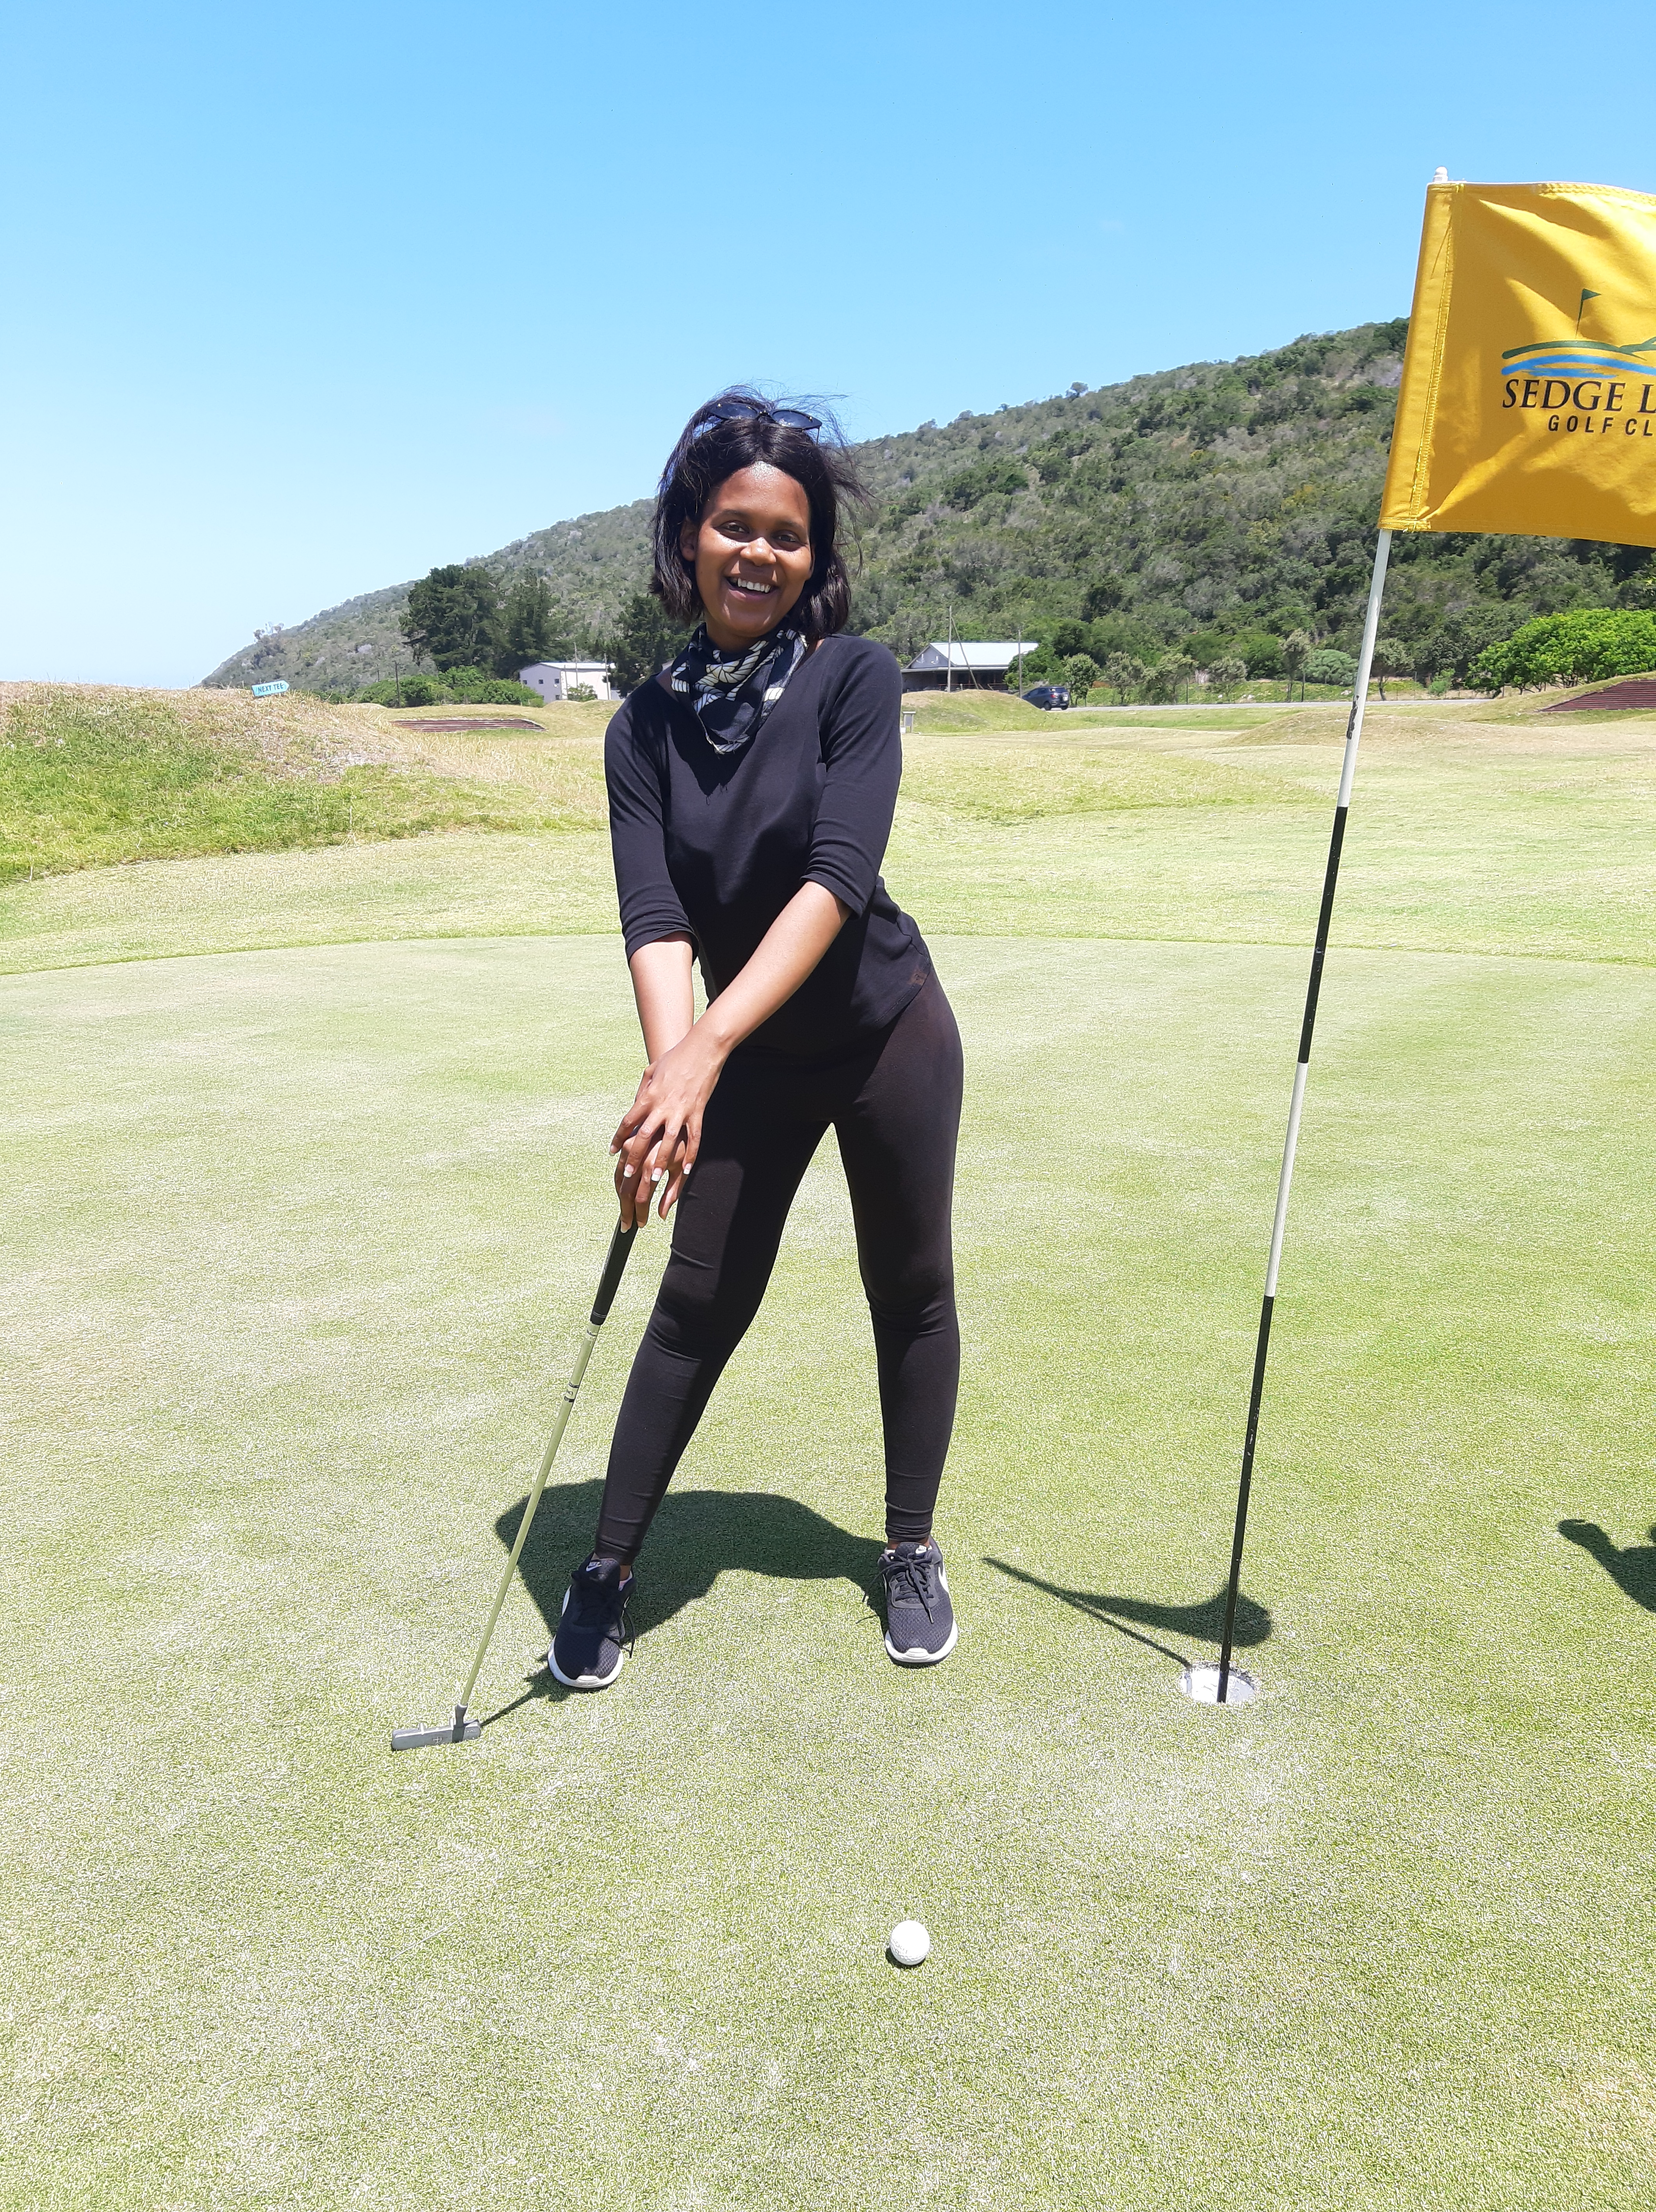 khalipha ntloko in black clothing playing golf at sedge links in western cape